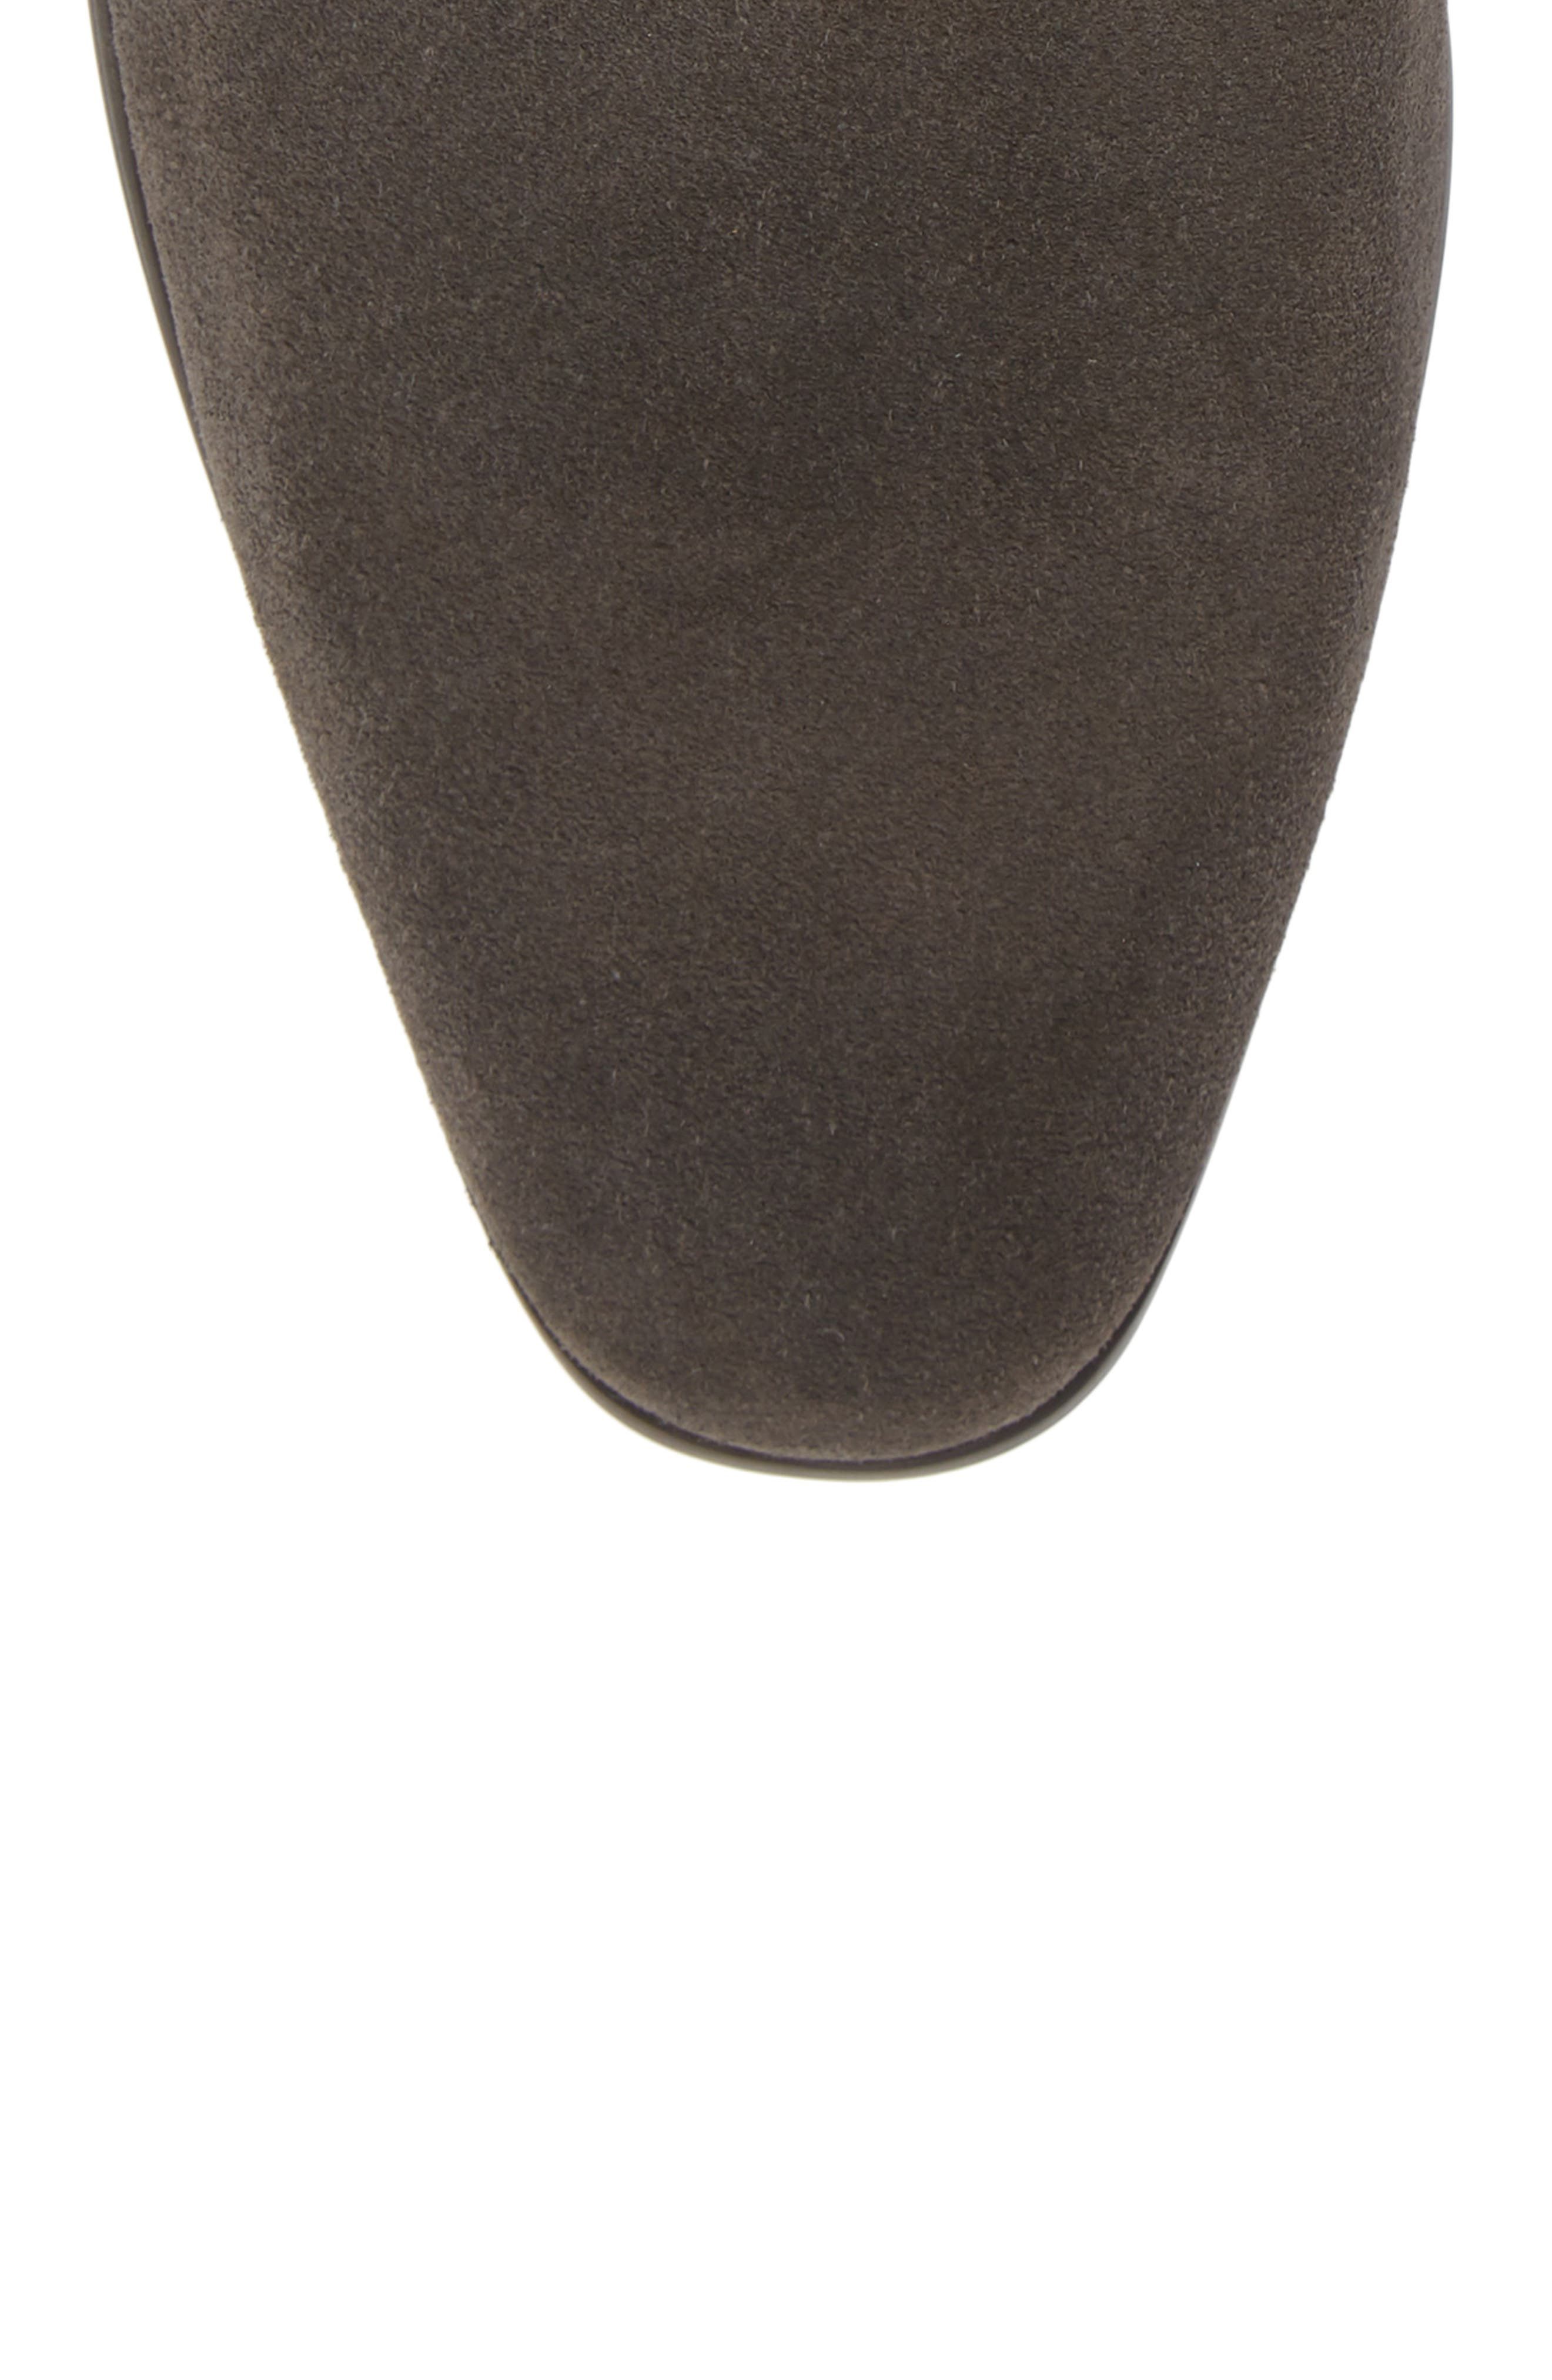 Edward Chelsea Boot,                             Alternate thumbnail 5, color,                             CHARCOAL SUEDE